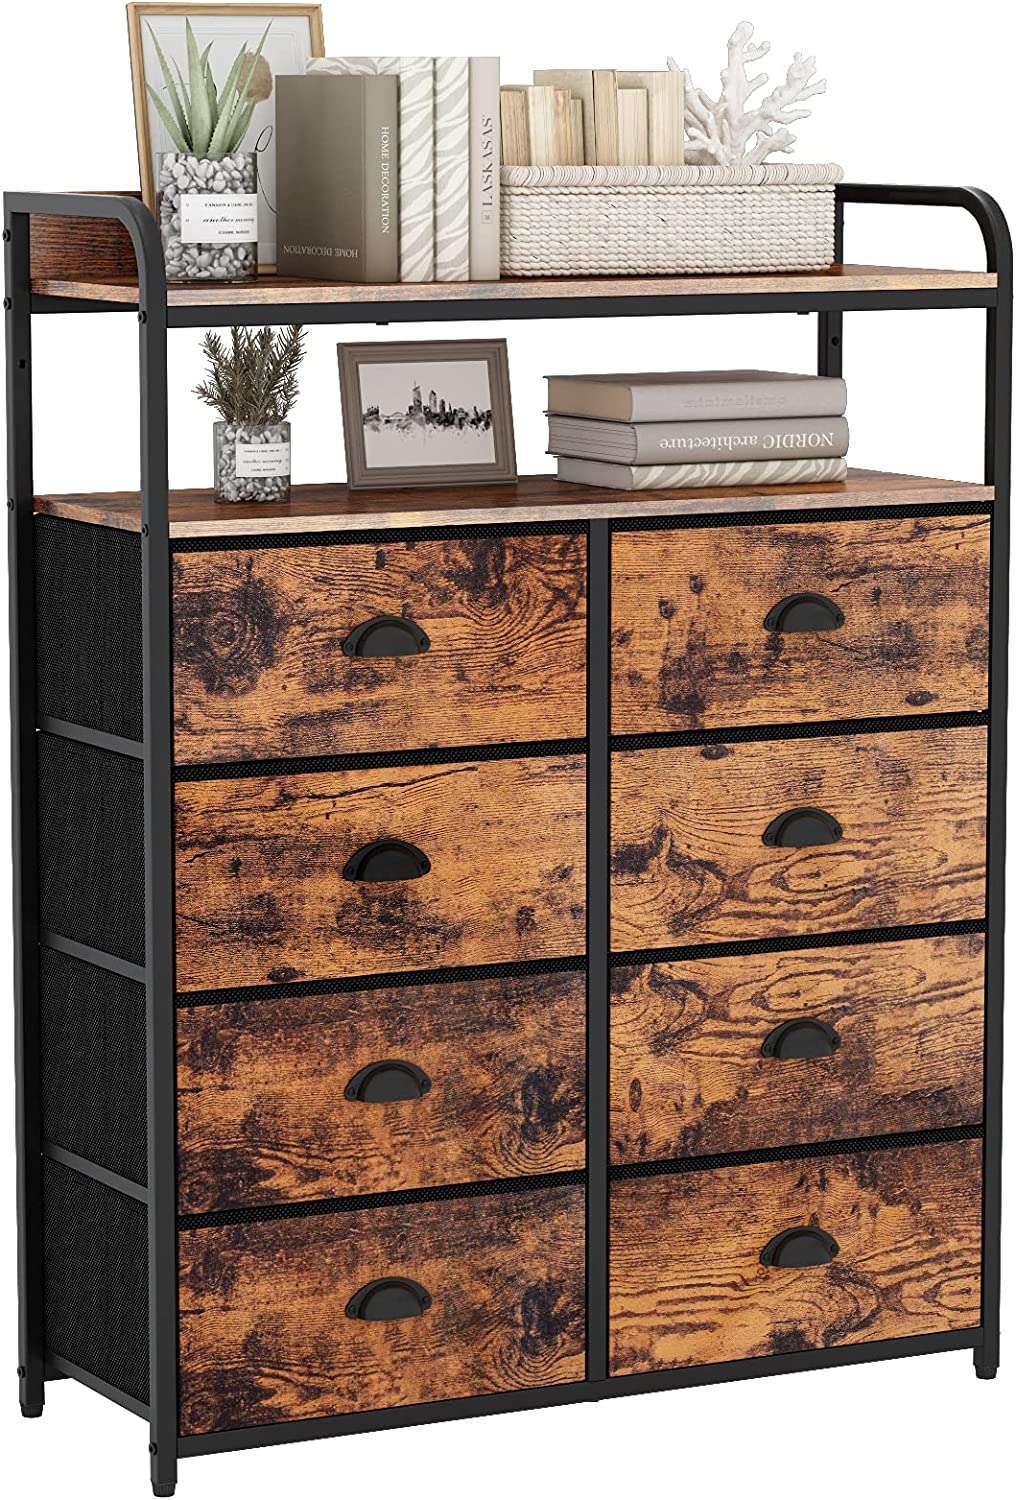 Furologee Dresser 8 Drawers with Double Shelf, Tall Storage Organizer Unit for Bedroom/Living Room/Entryway,Fabric Bins,Wooden Top(Rustic Brown